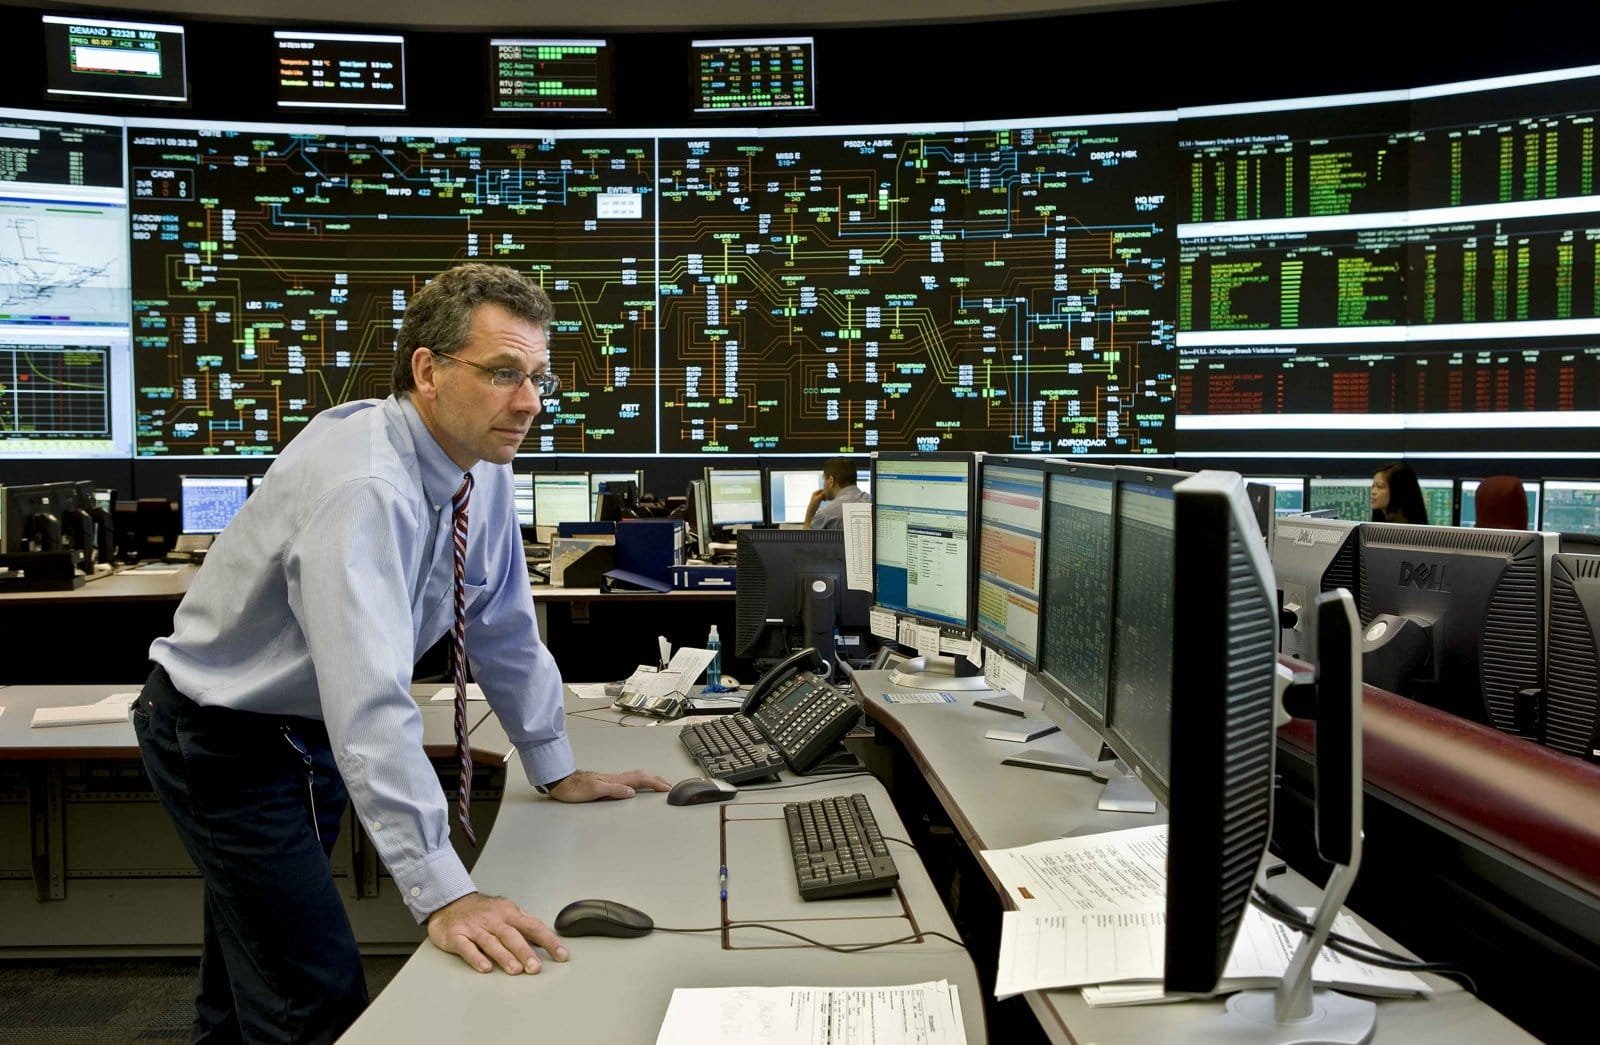 Employees of IESO oversee one of the electricity system's control rooms. Photo courtesy of Independent Electricity System Operator